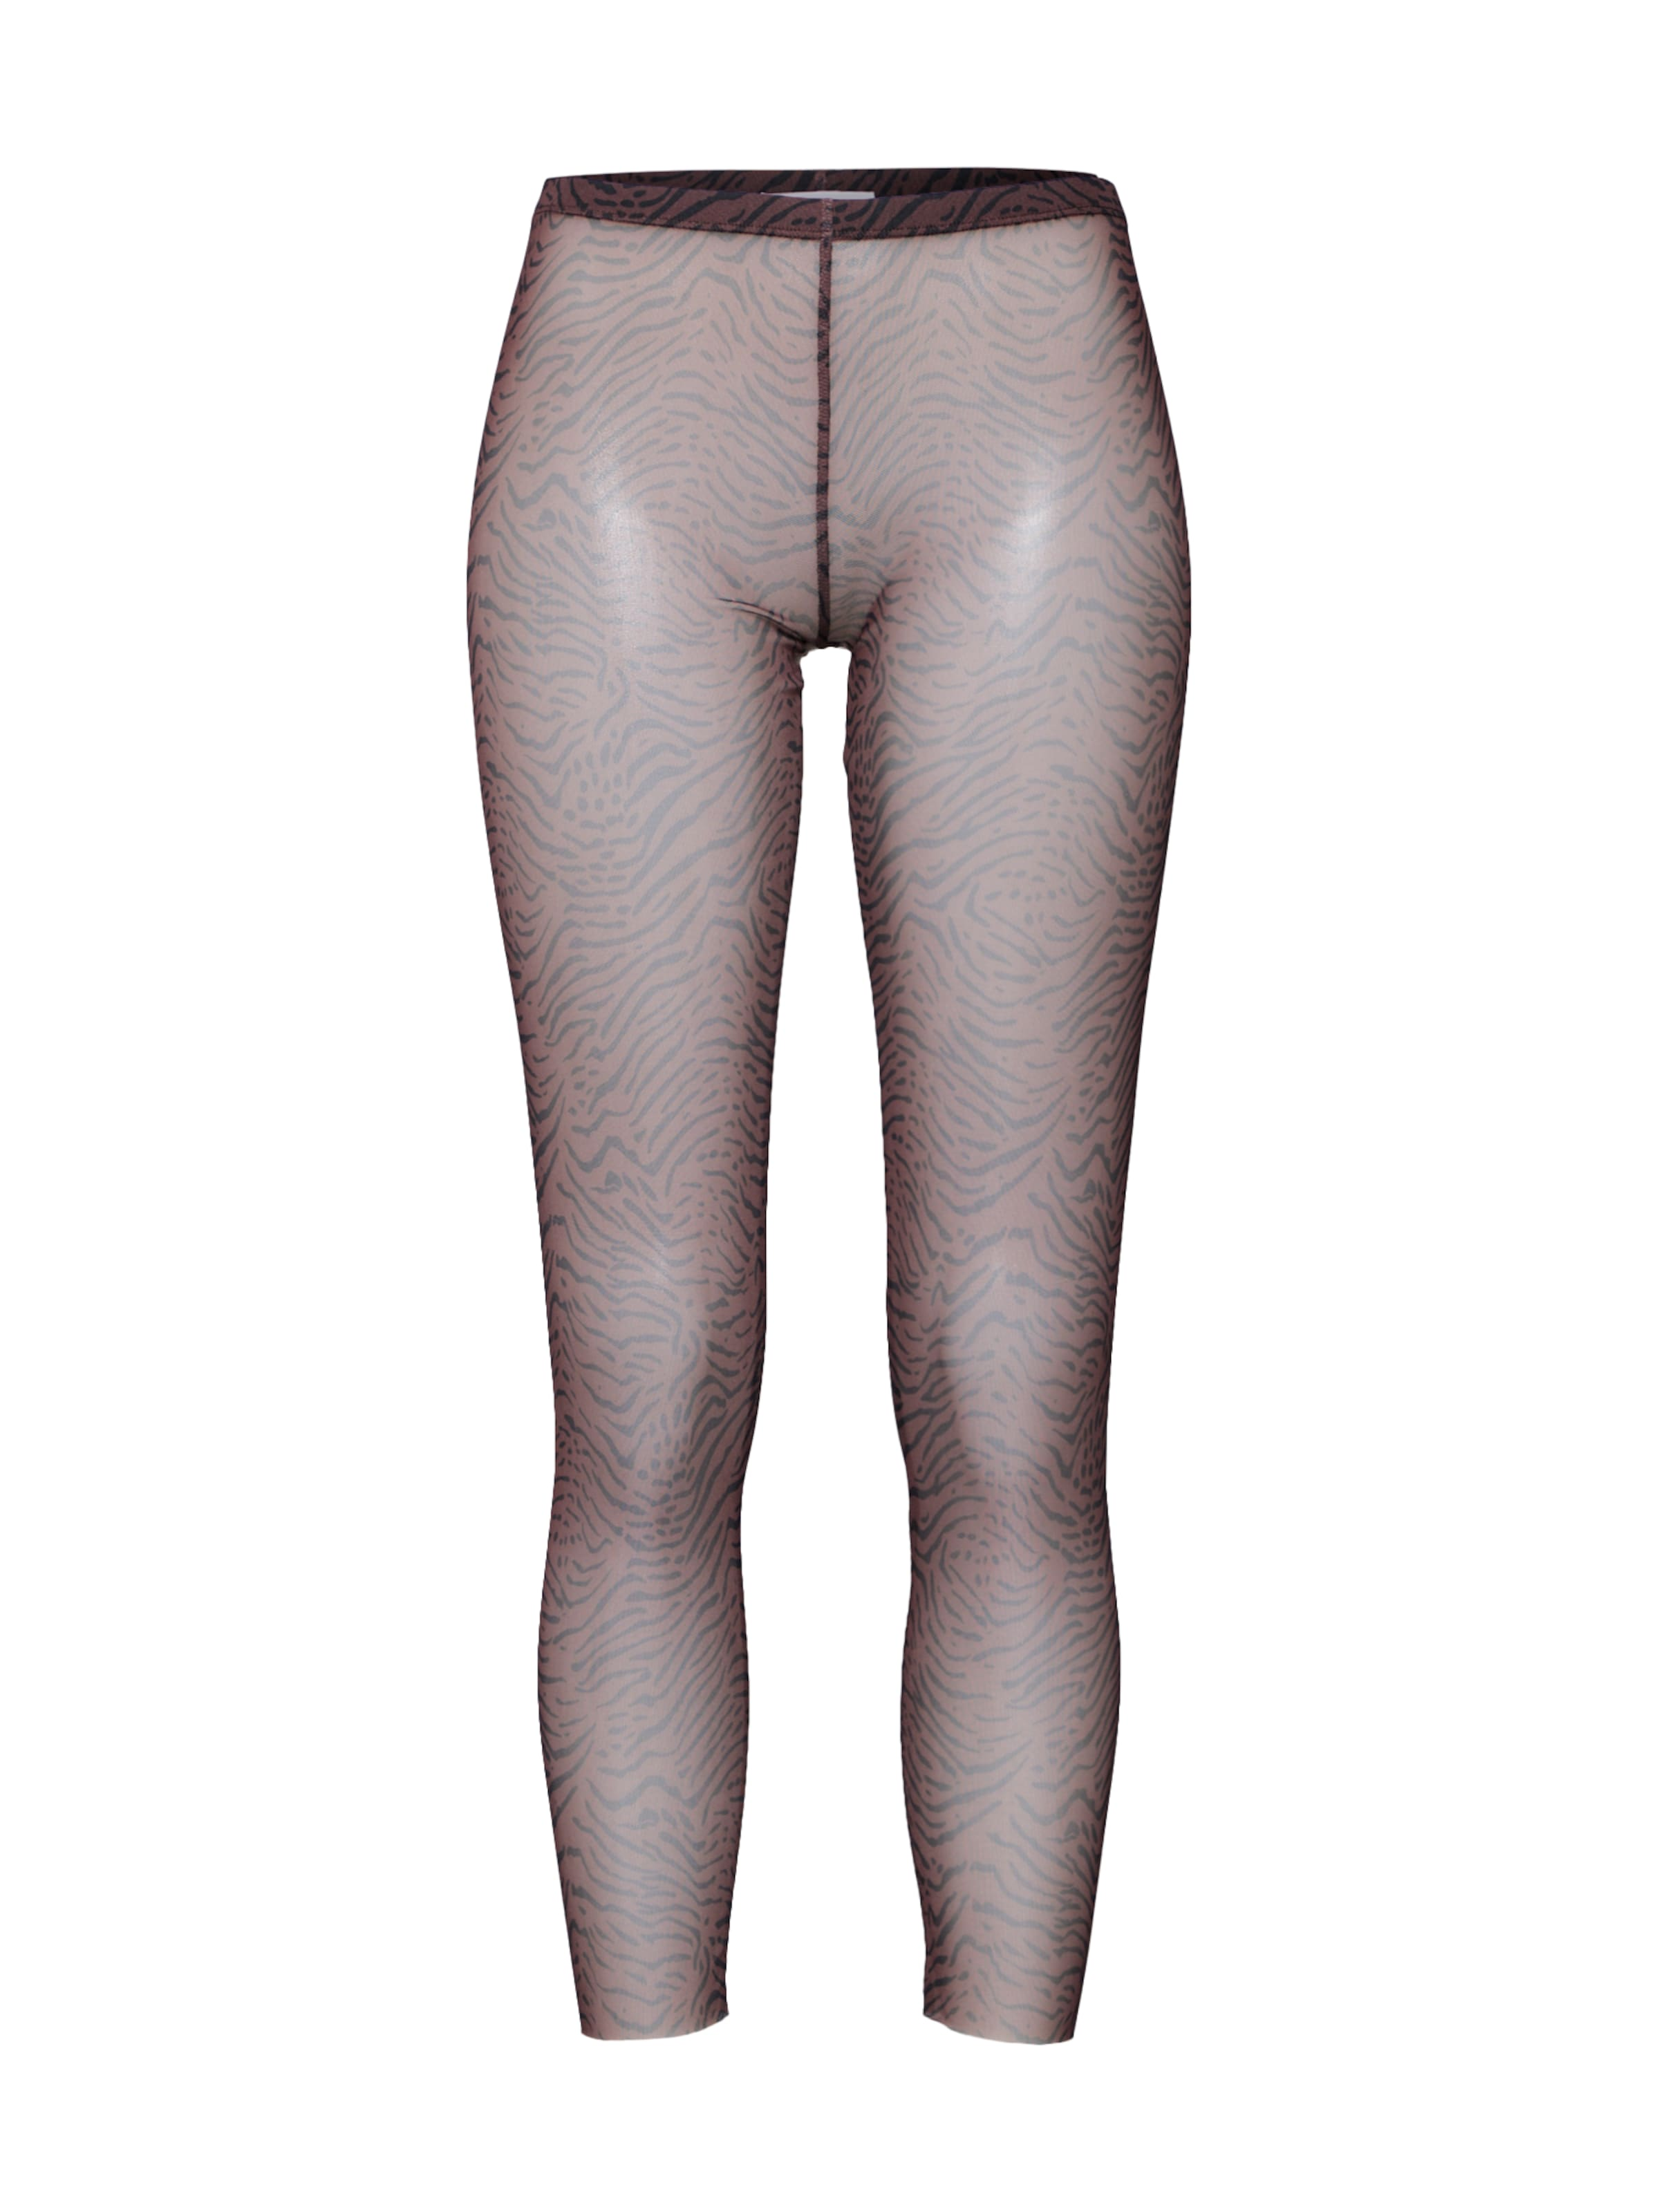 En Edited Leggings MarronNoir 'marten' Edited 2HYeEIWD9